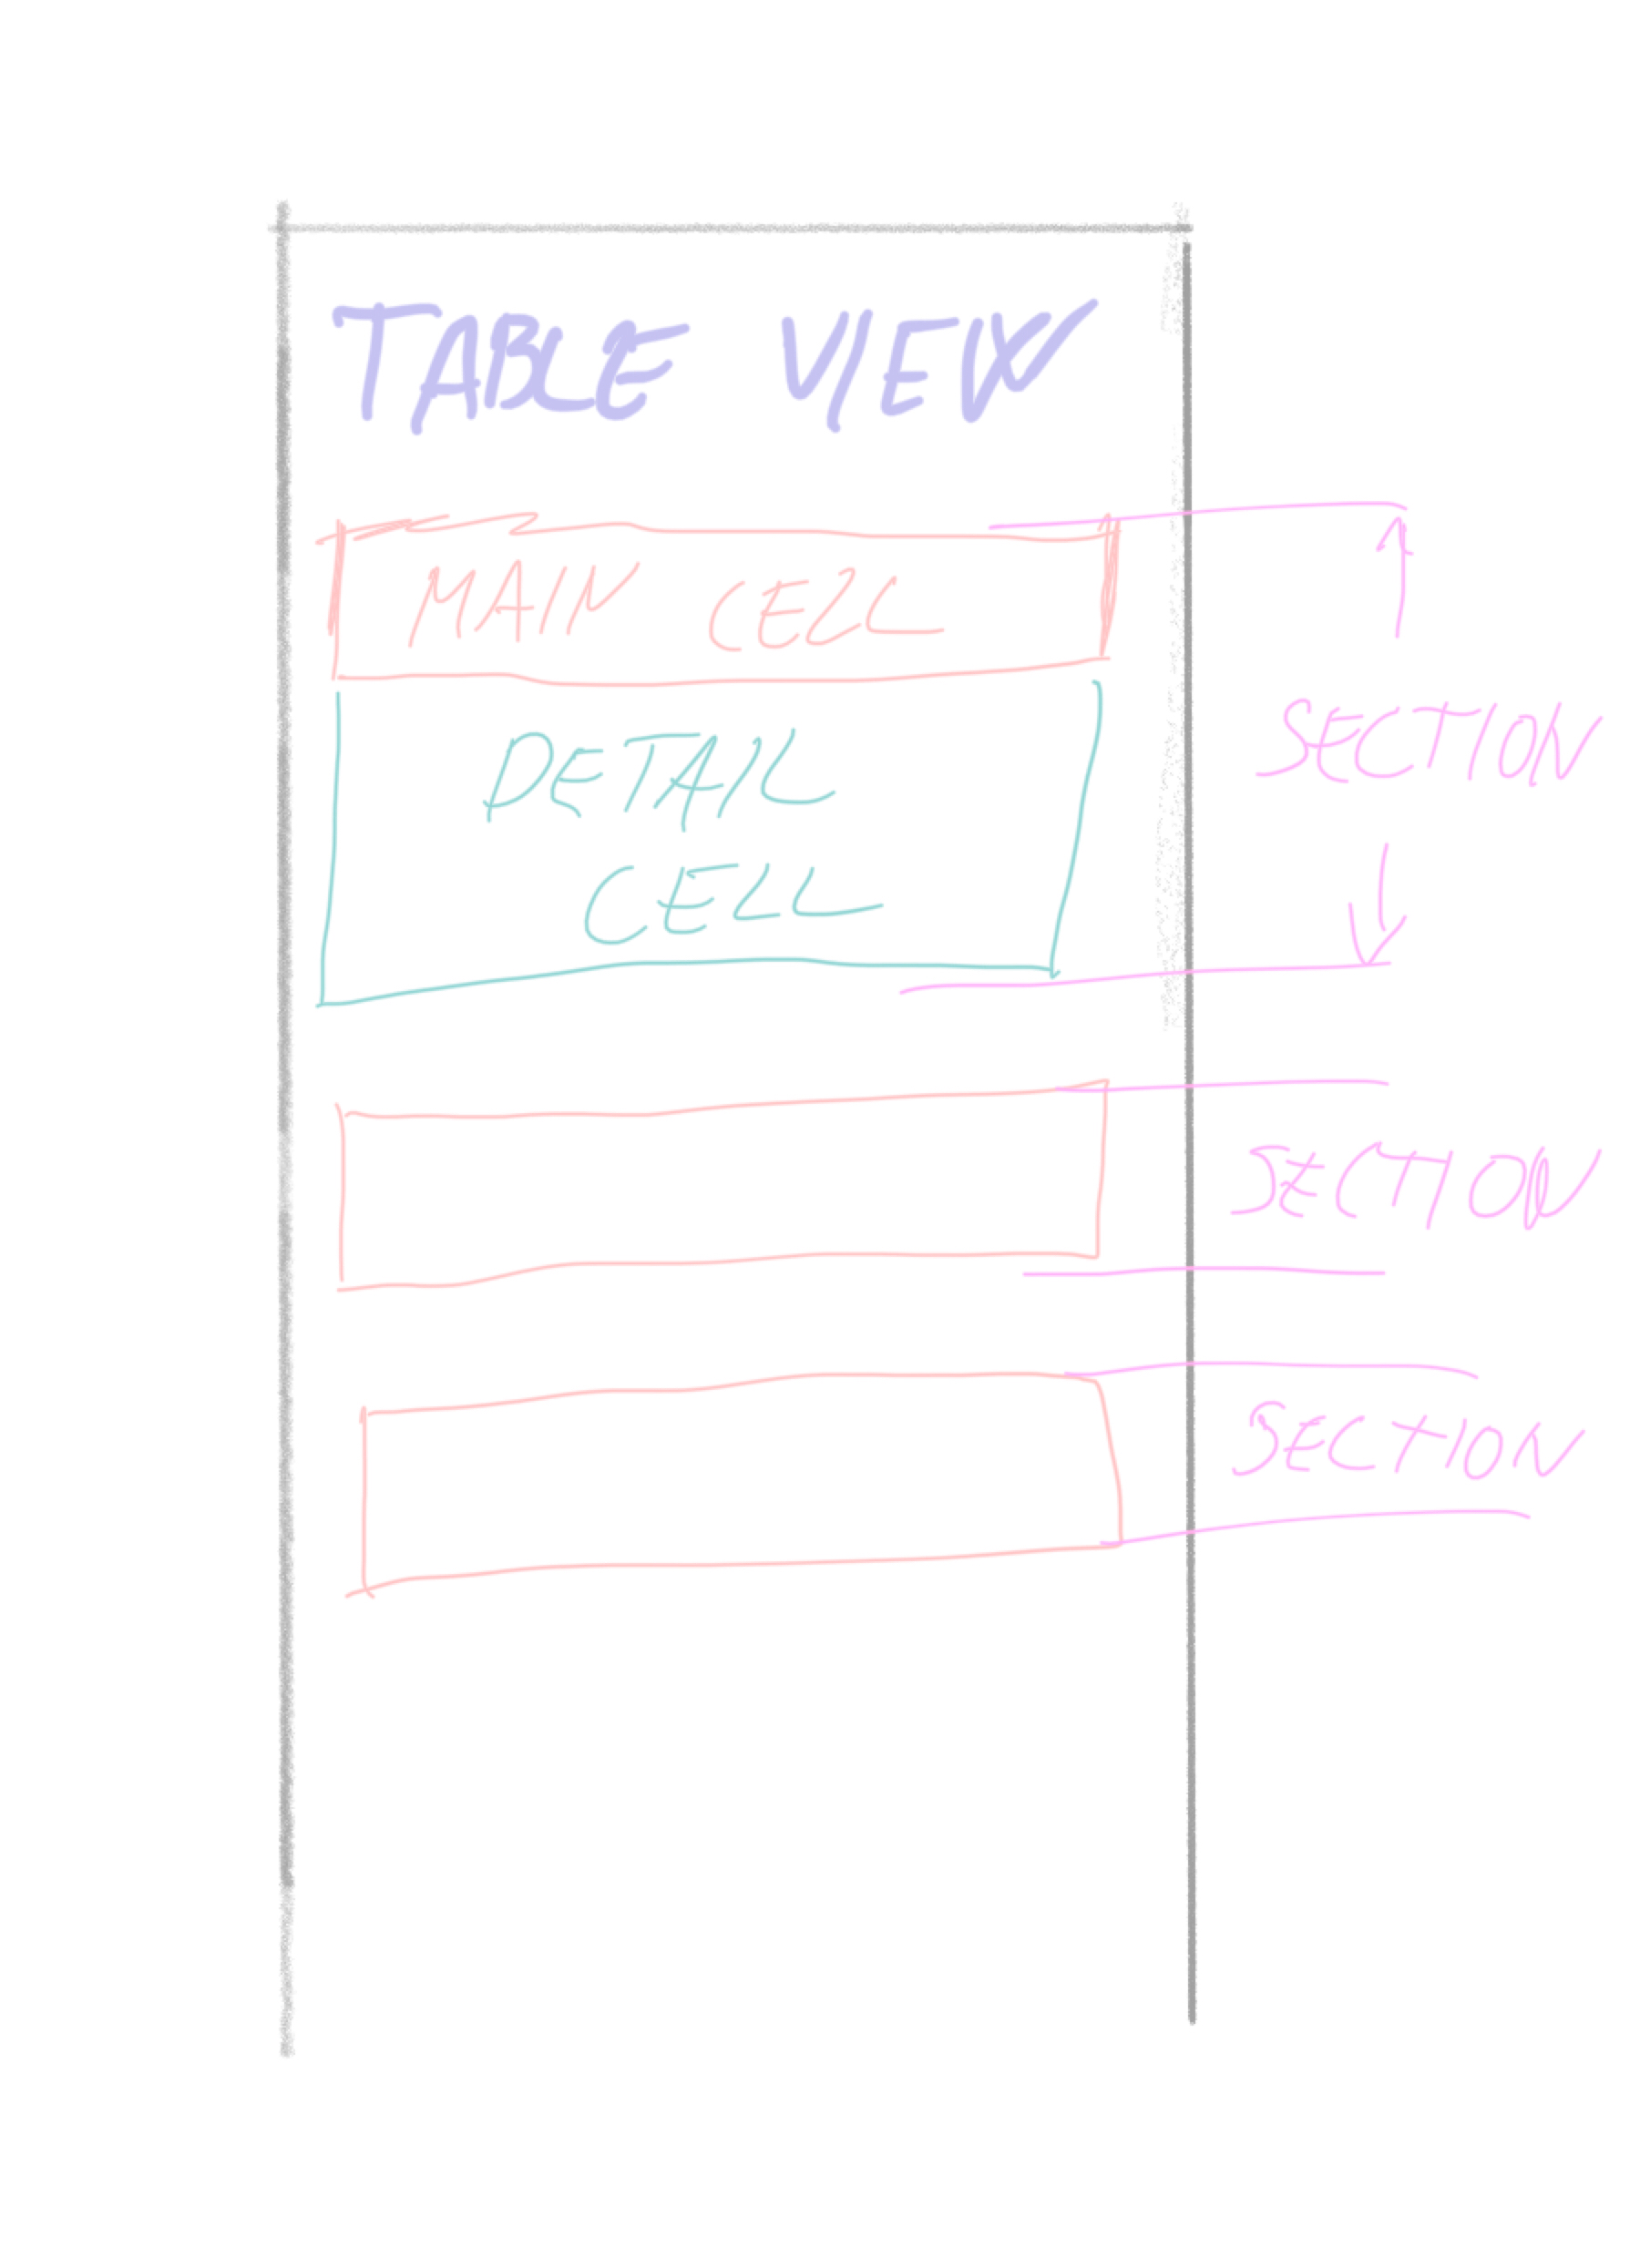 Collapsible table cells illustration